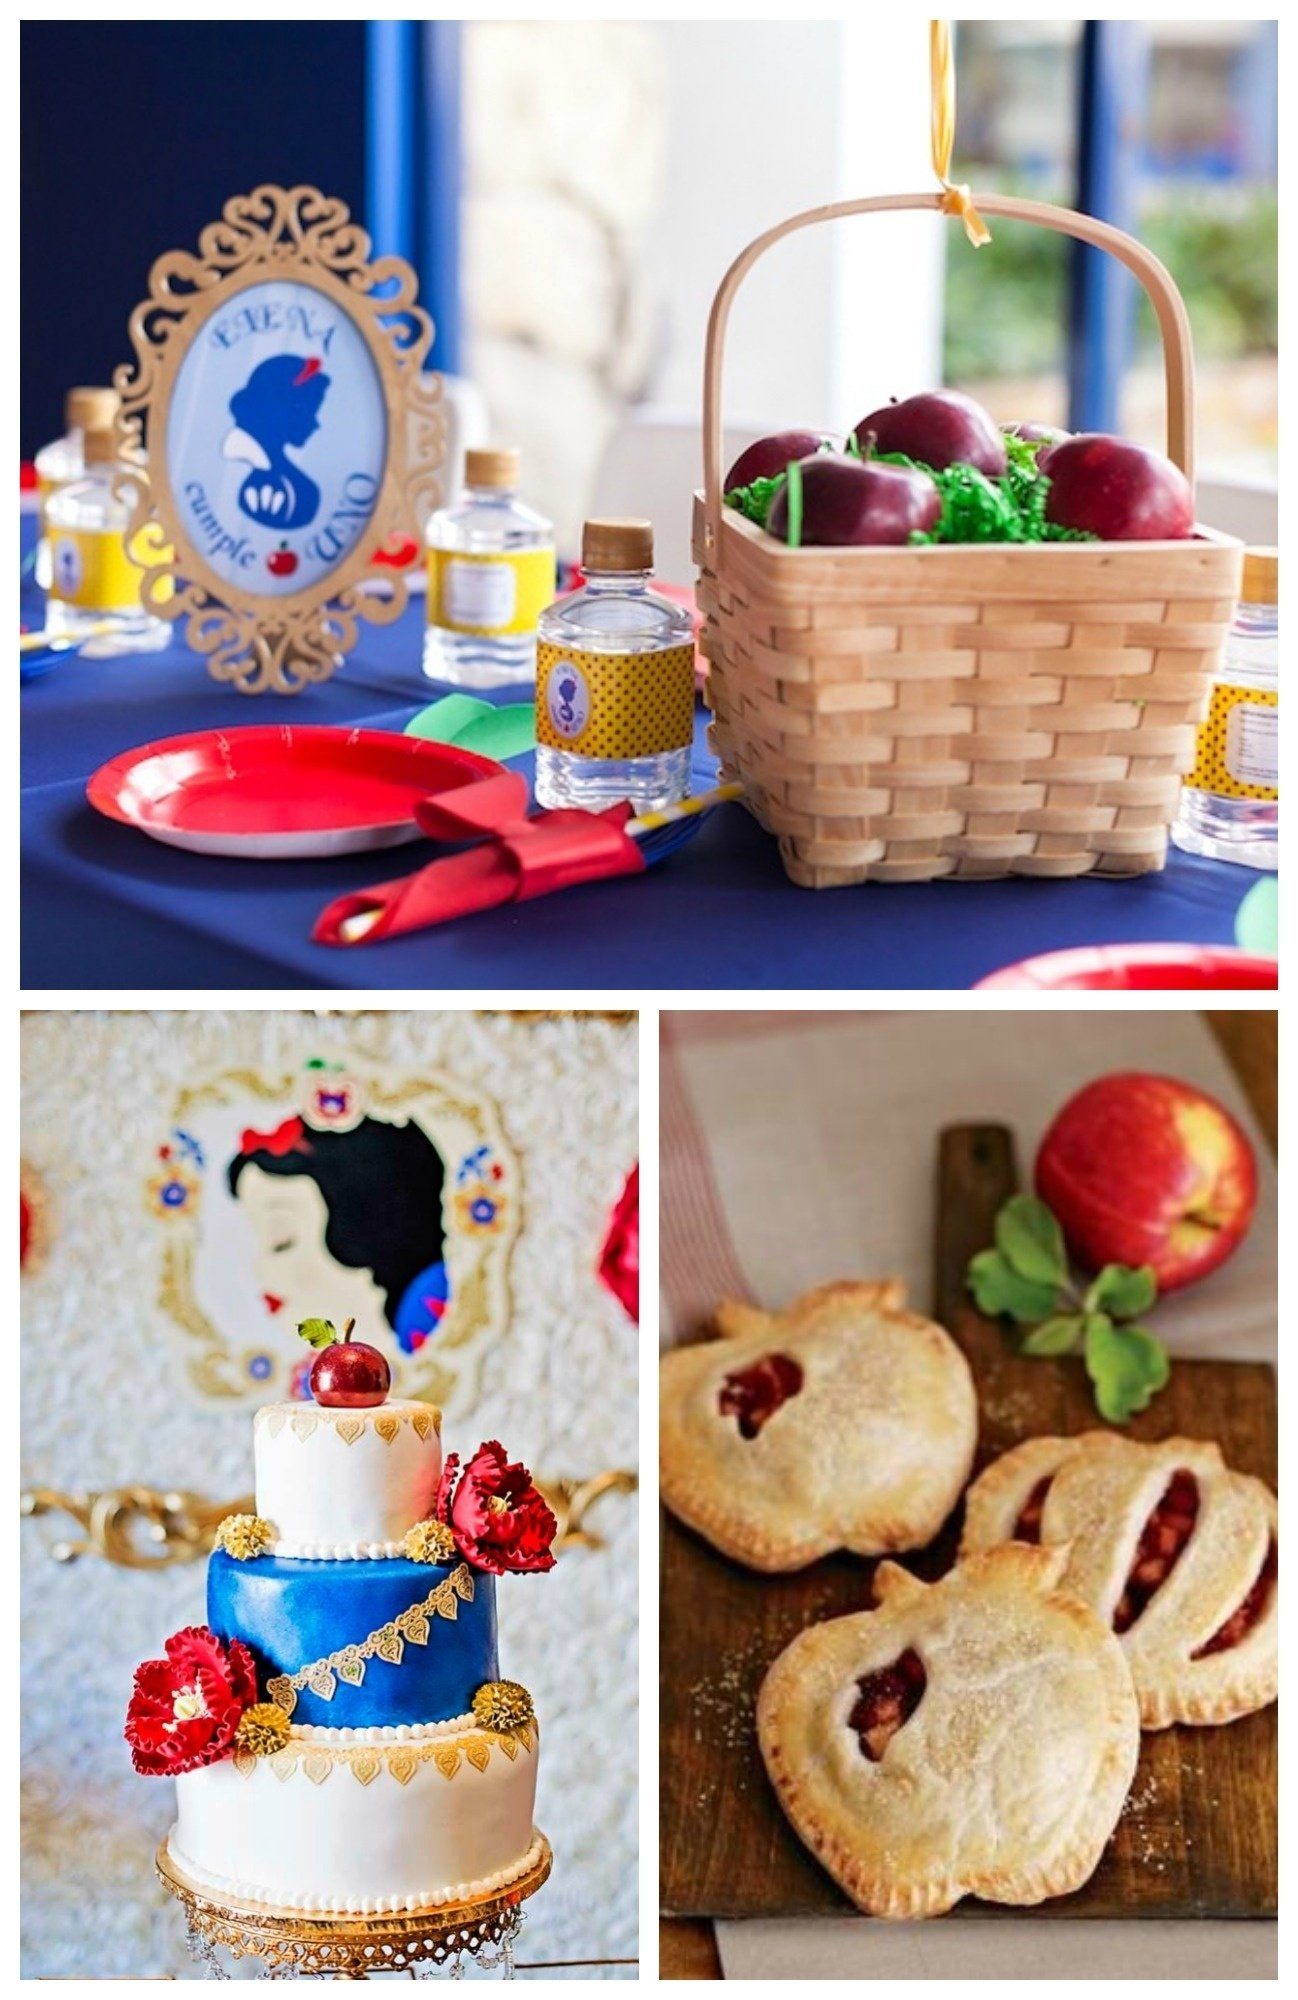 10 Fashionable Snow White Birthday Party Ideas the fairest one of all snow white first birthday party ideas and